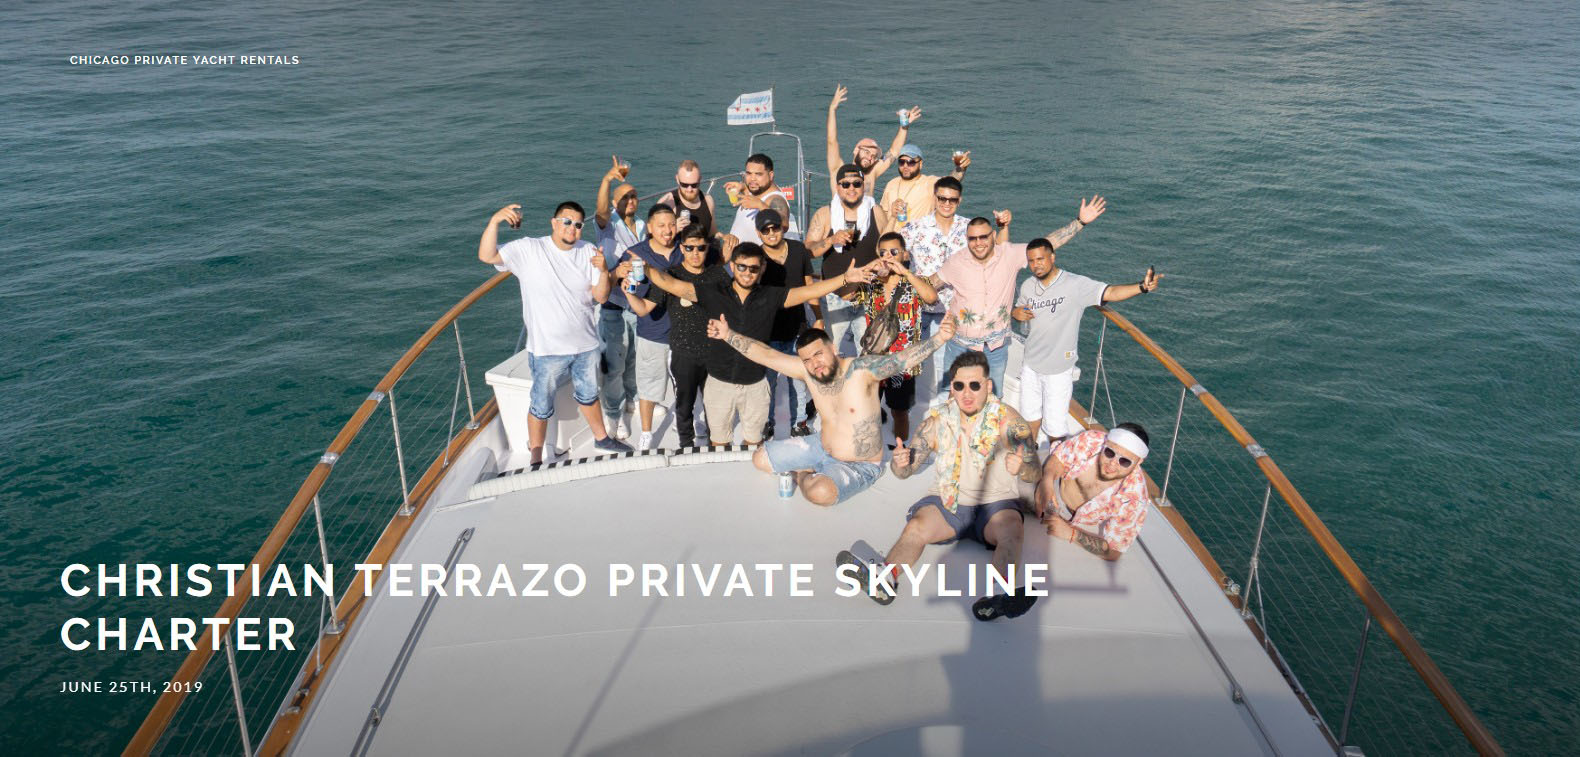 Christian Terrazo Private Skyline Charter